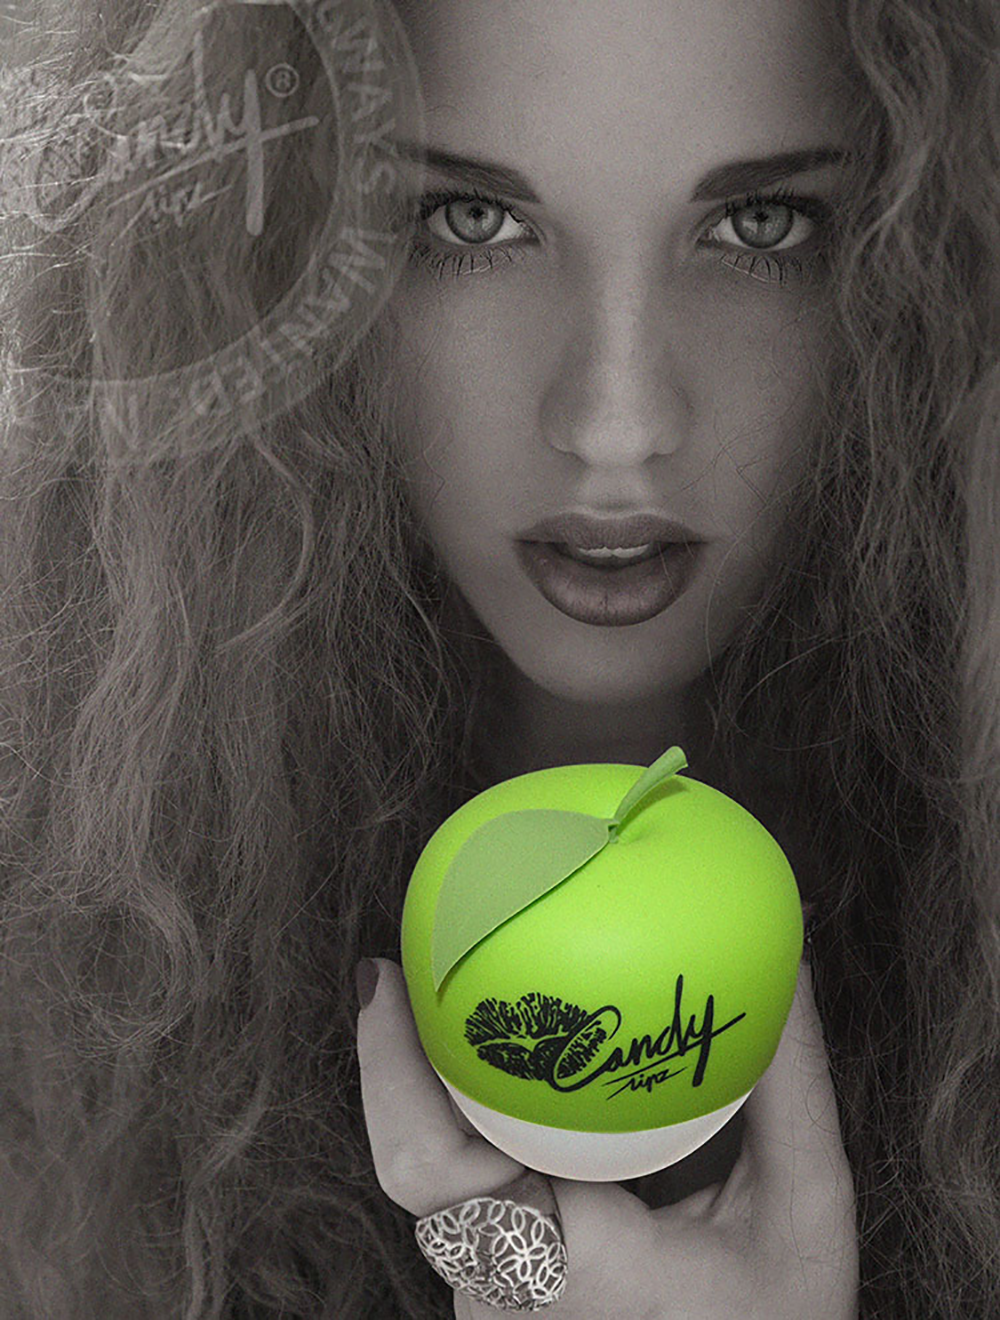 CandyLipz_Model_with-Apple-2